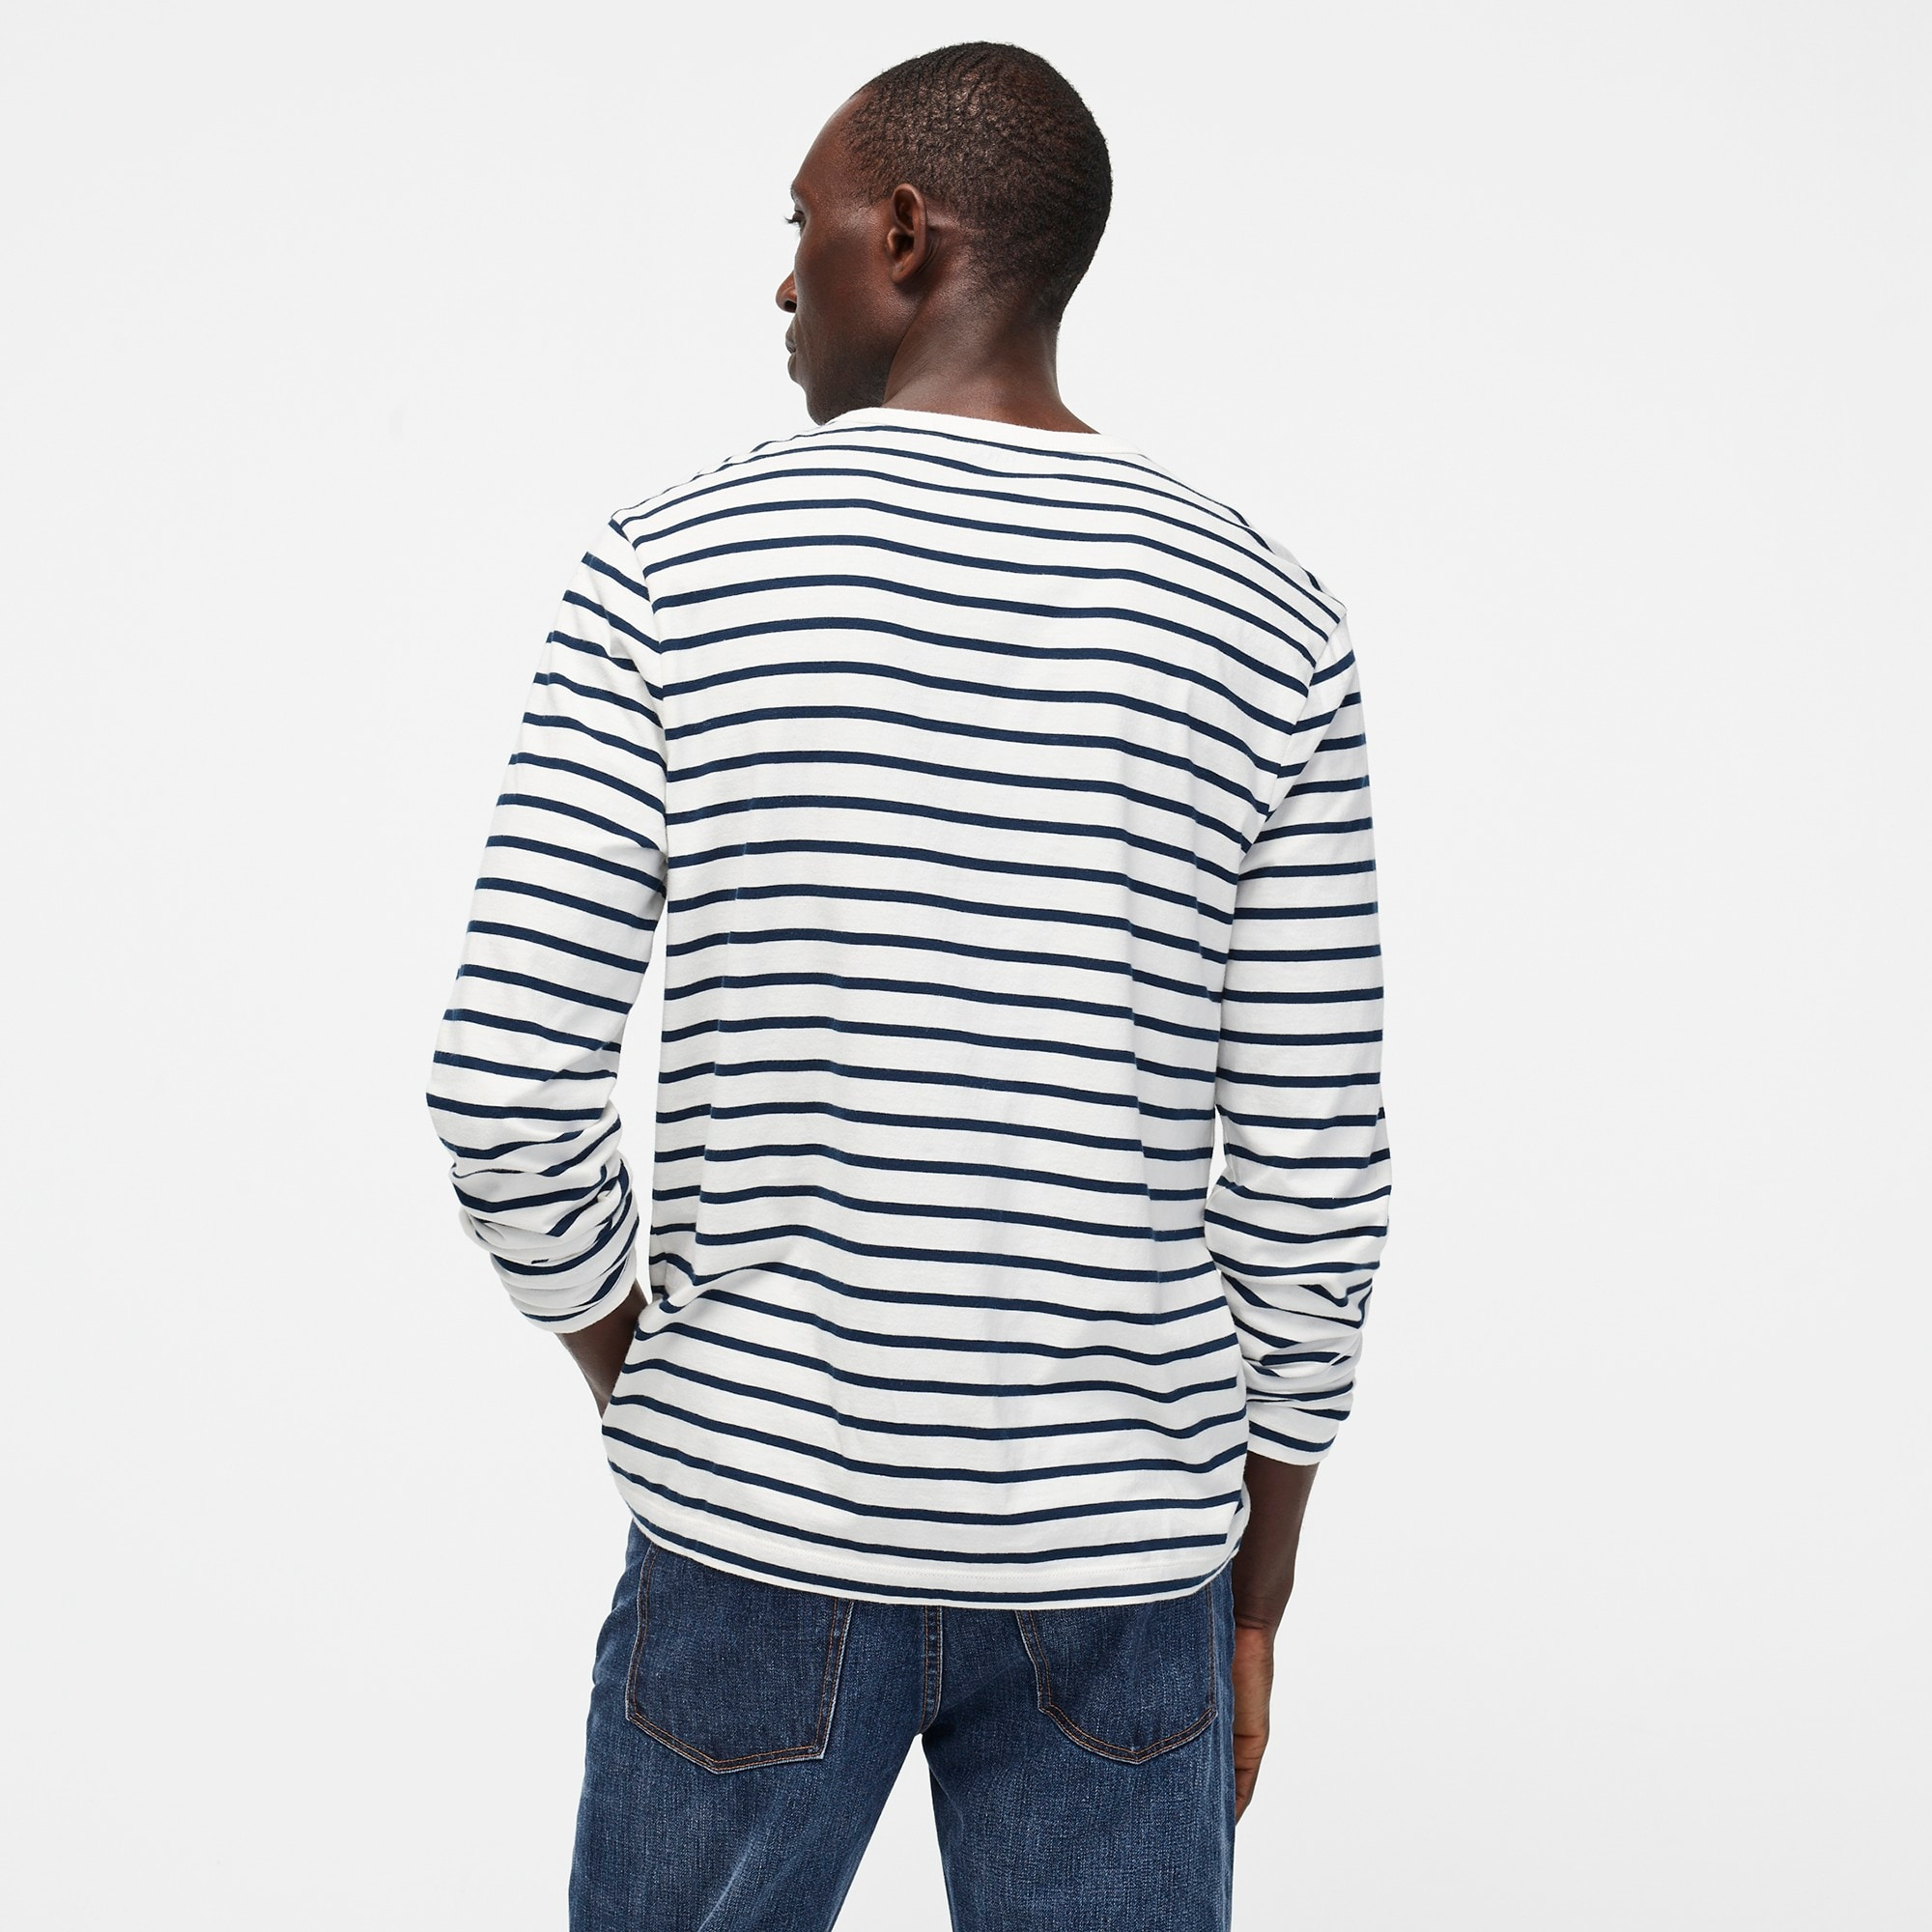 Image 3 for J.Crew Mercantile Broken-in long-sleeve T-shirt in deck stripe